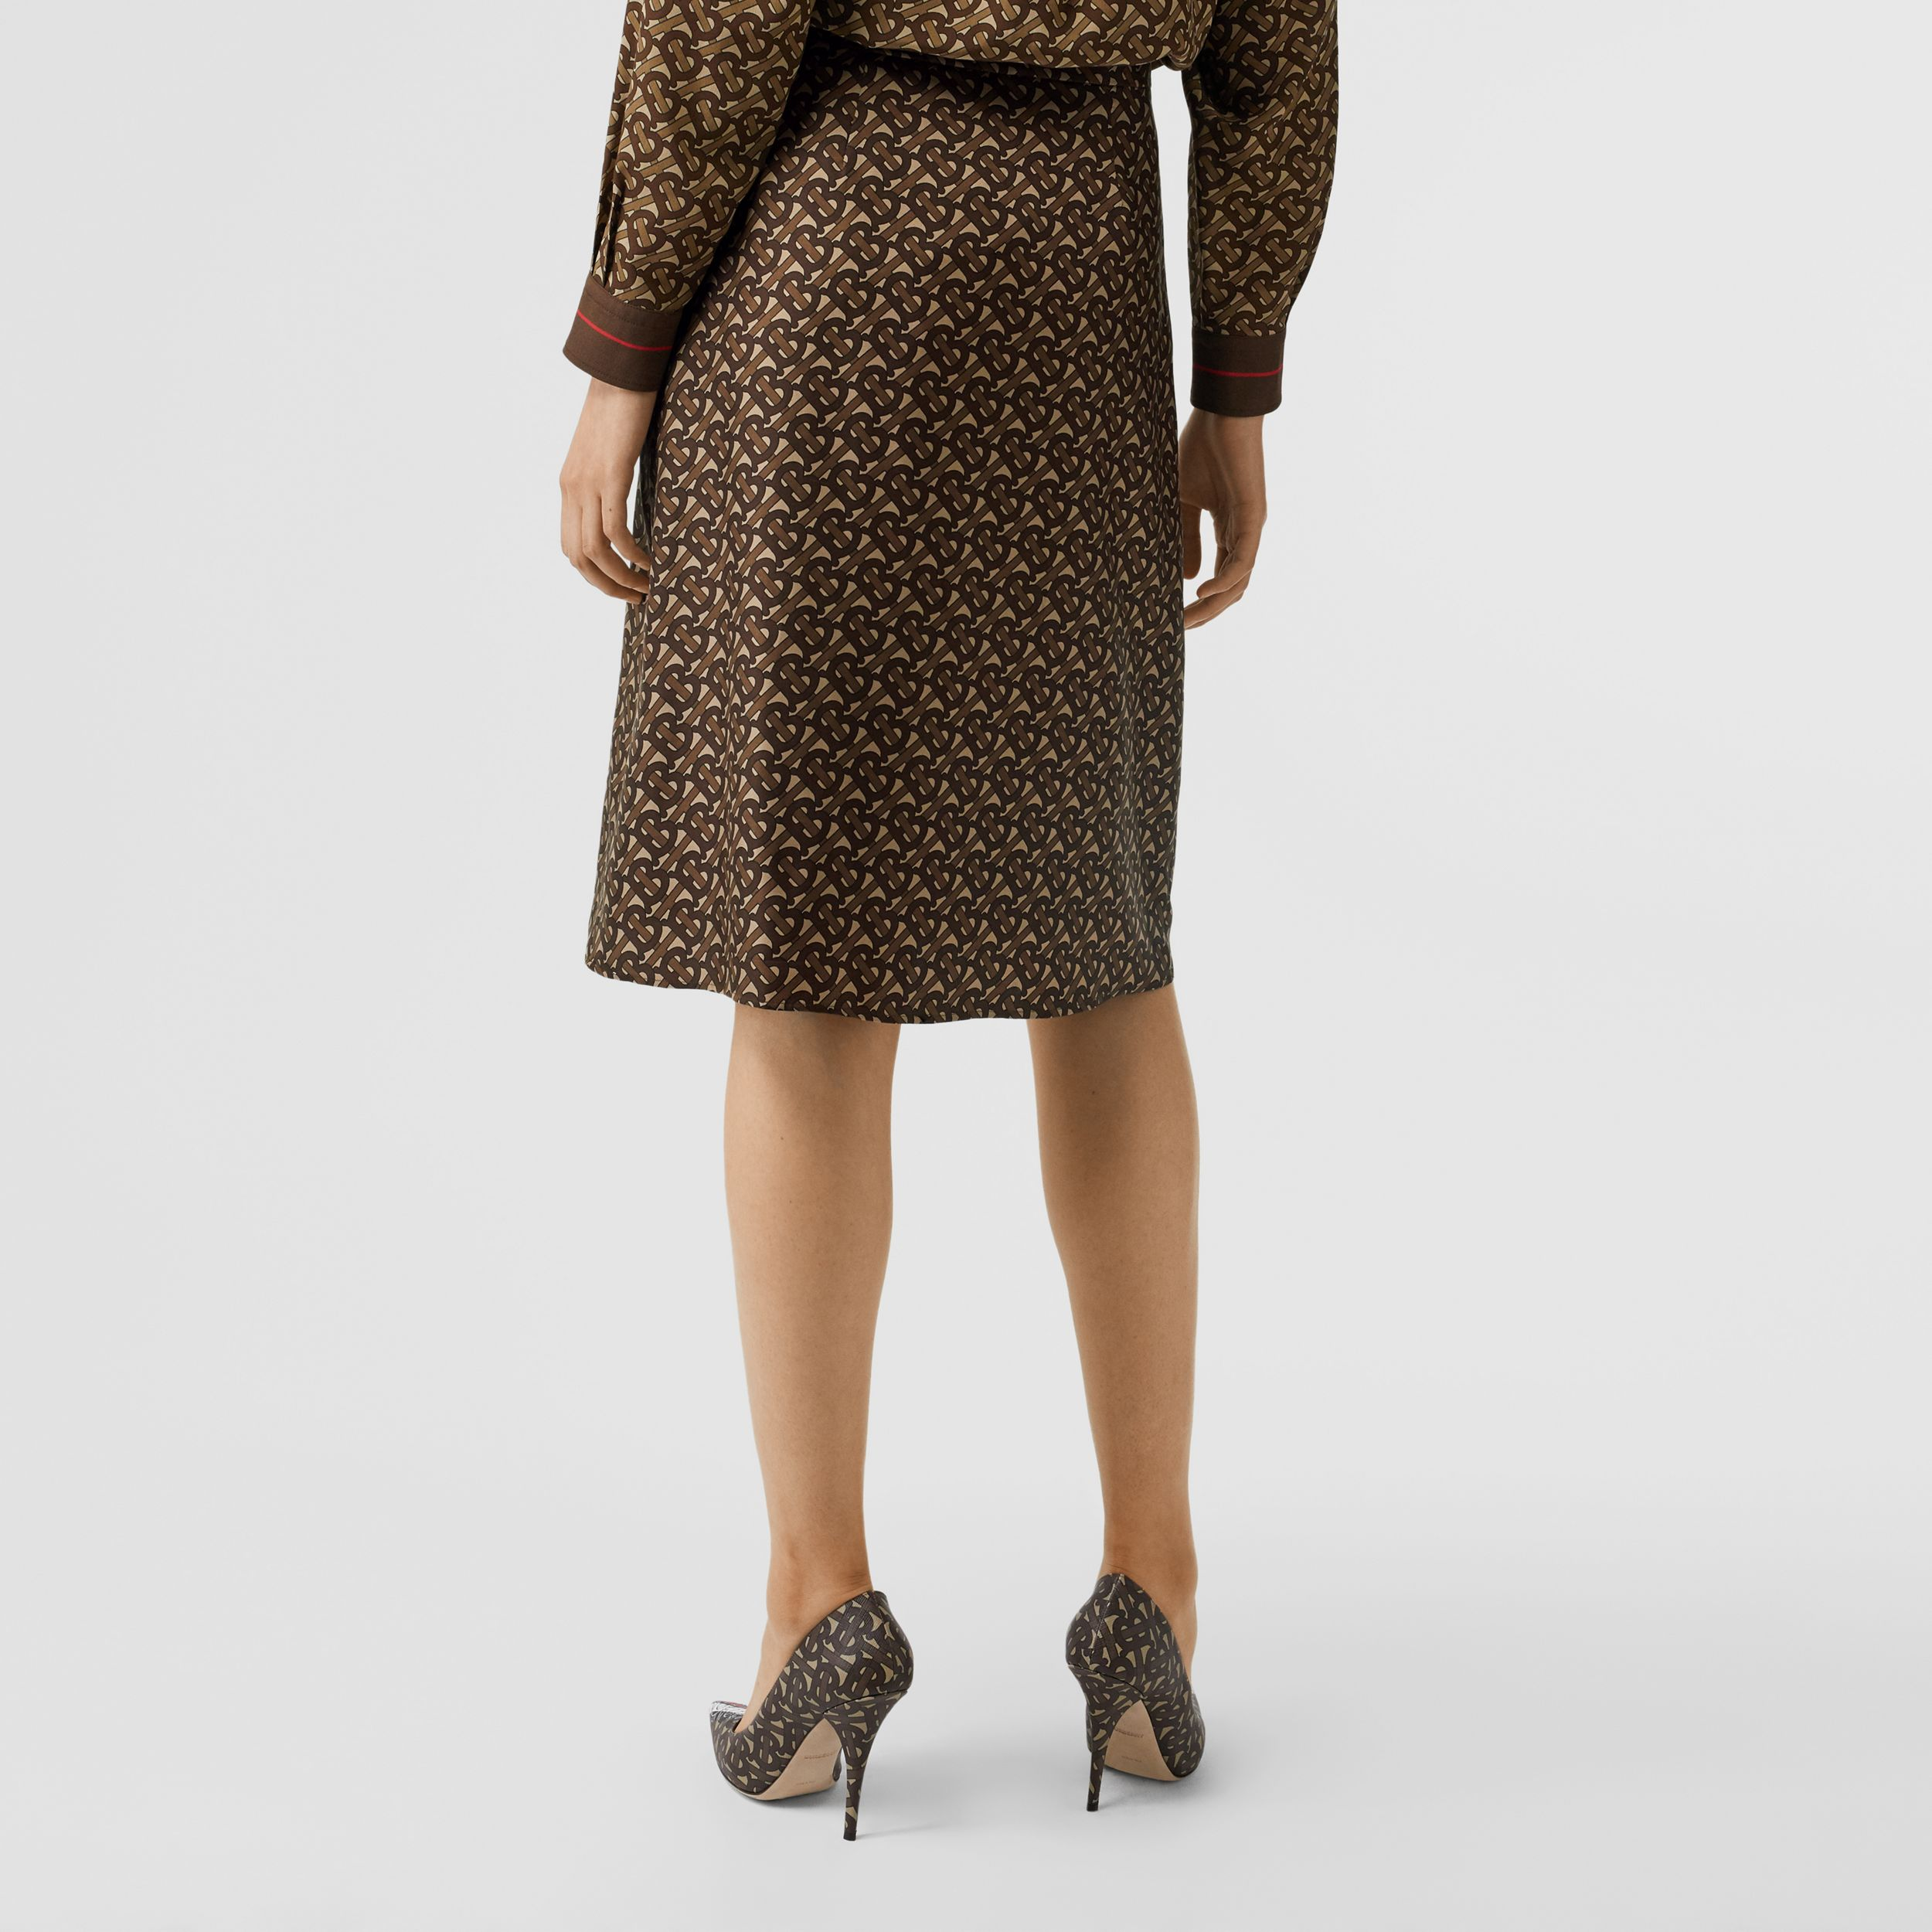 Monogram Stripe Print Silk Skirt in Bridle Brown - Women | Burberry - 3